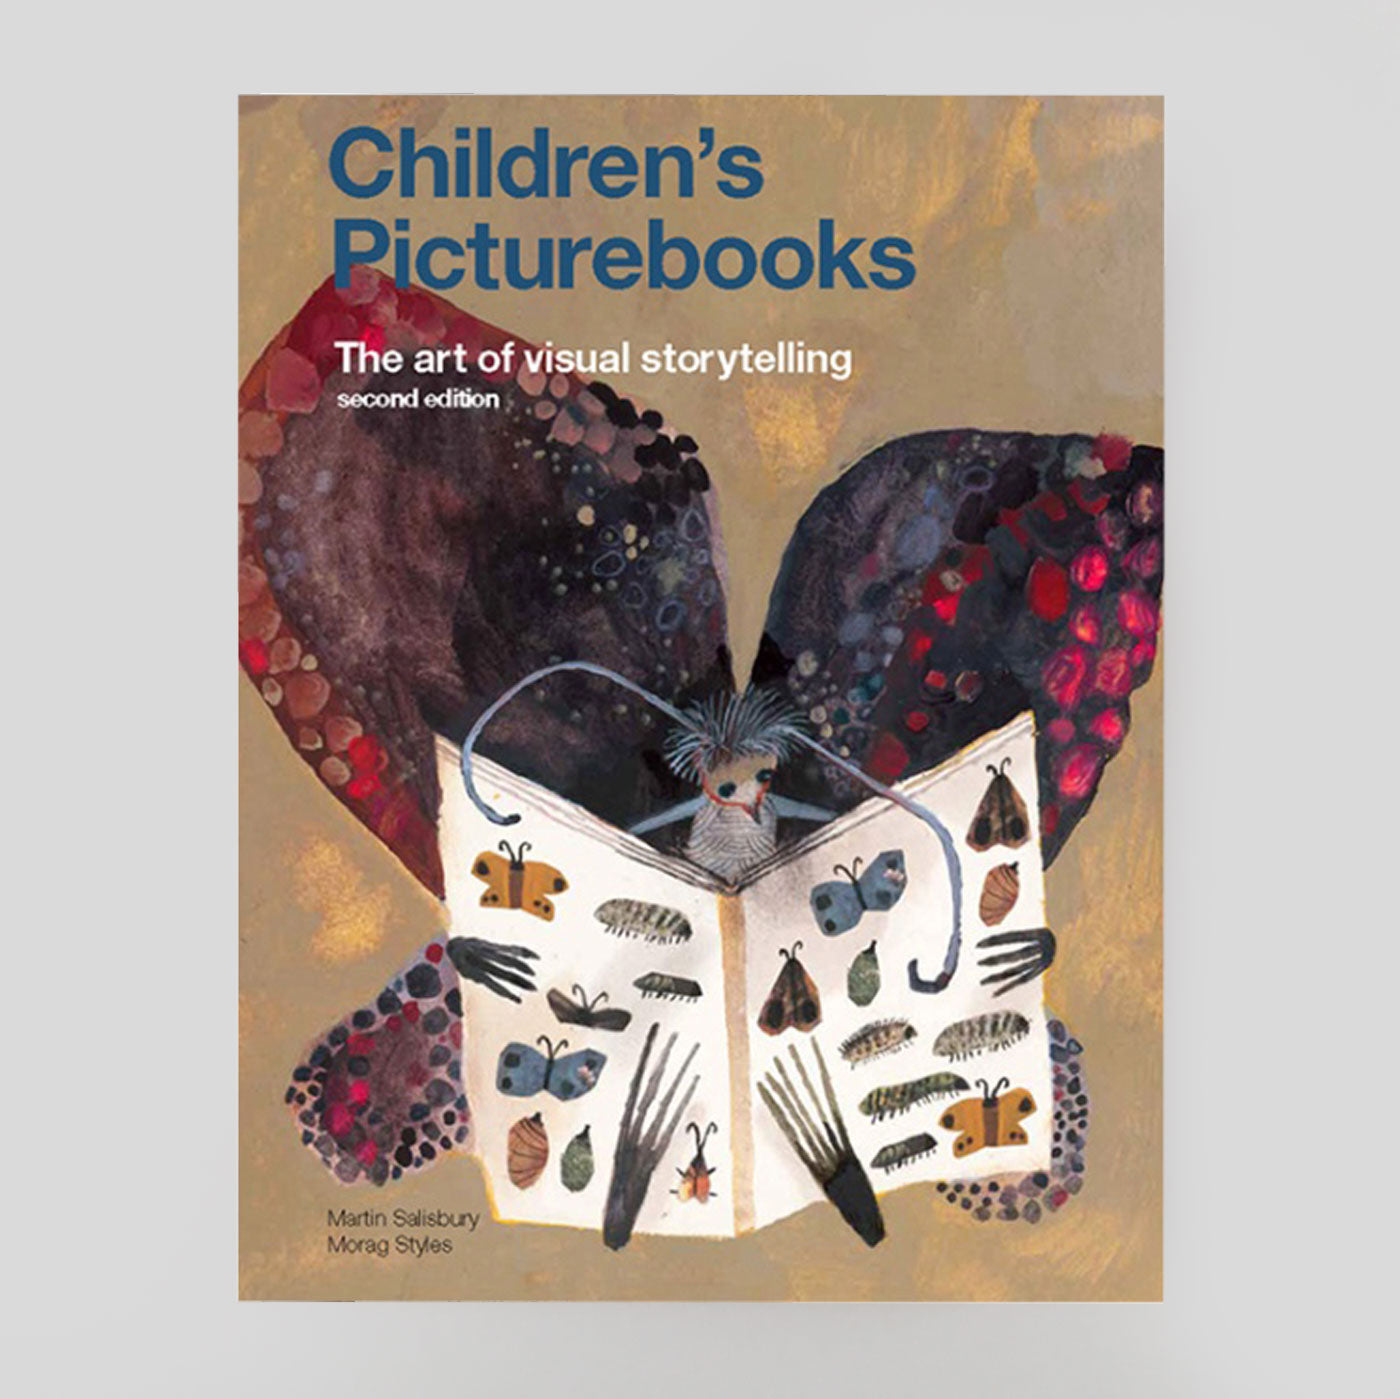 Children's Picturebooks by Martin Salisbury & Morag Styles (2nd ed). Colours May Vary